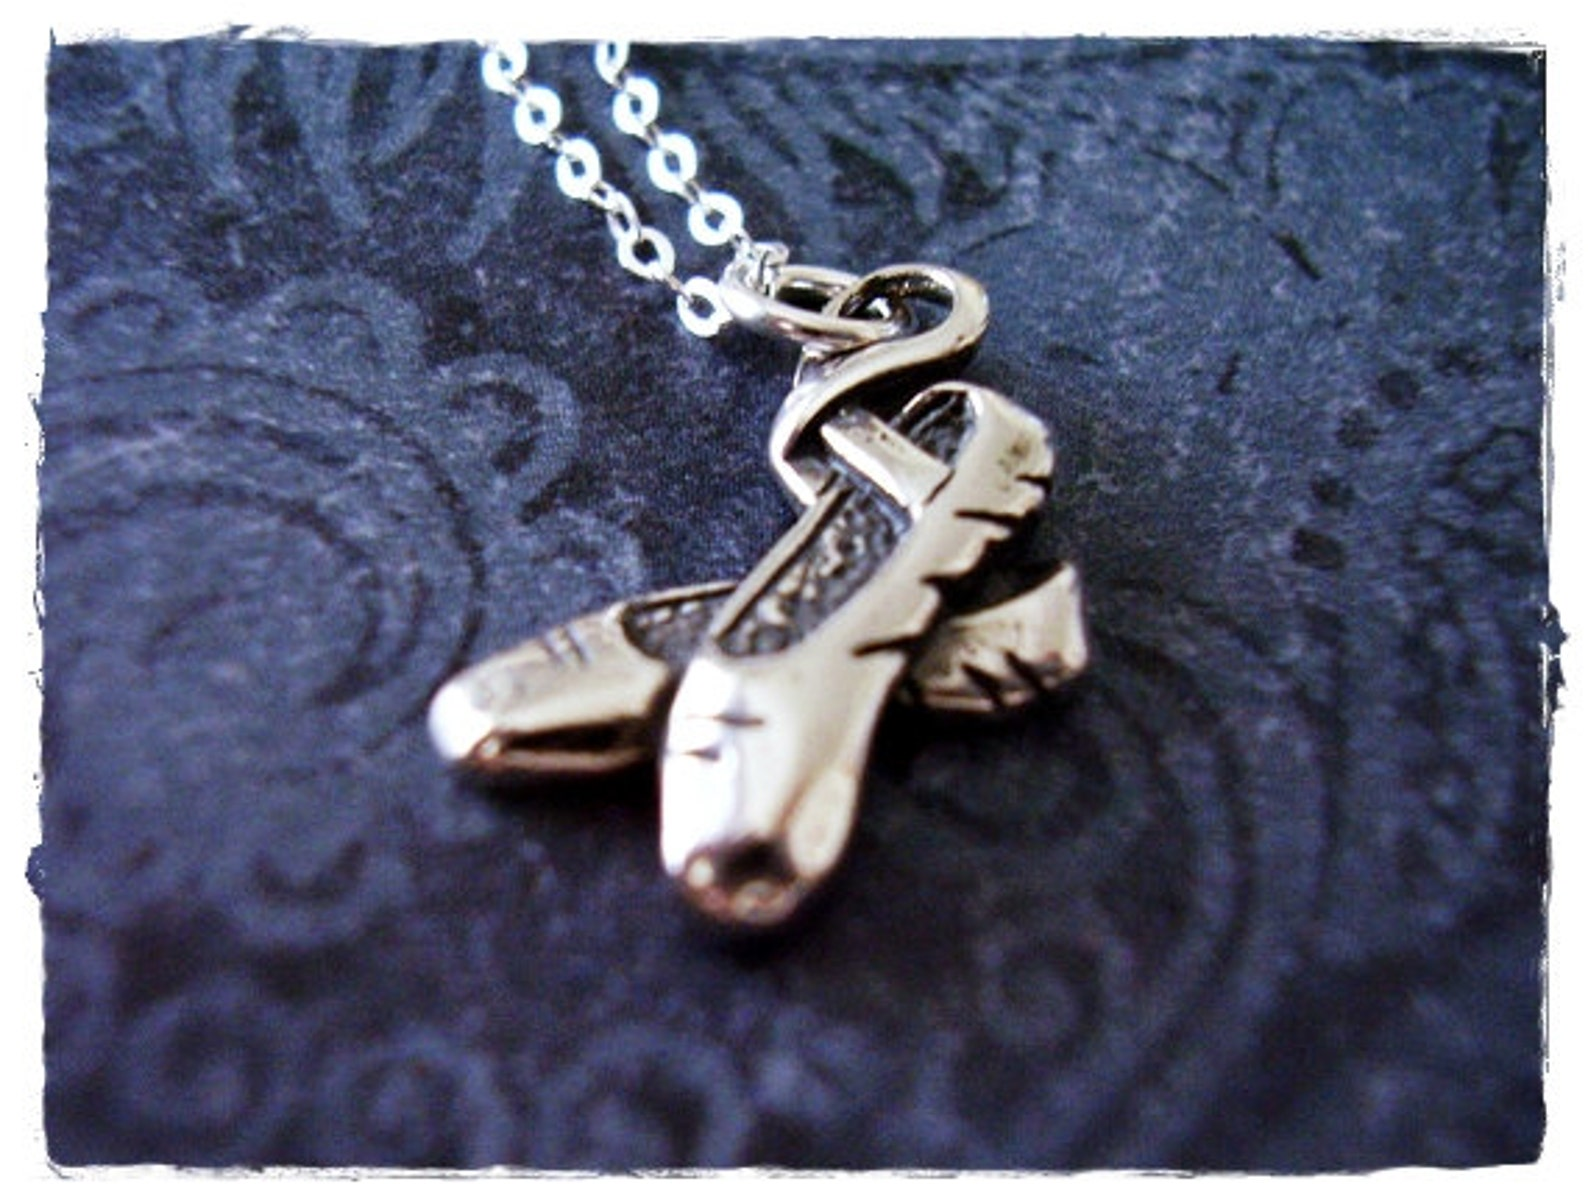 silver ballet shoes necklace - sterling silver ballet shoes charm on a delicate sterling silver cable chain or charm only